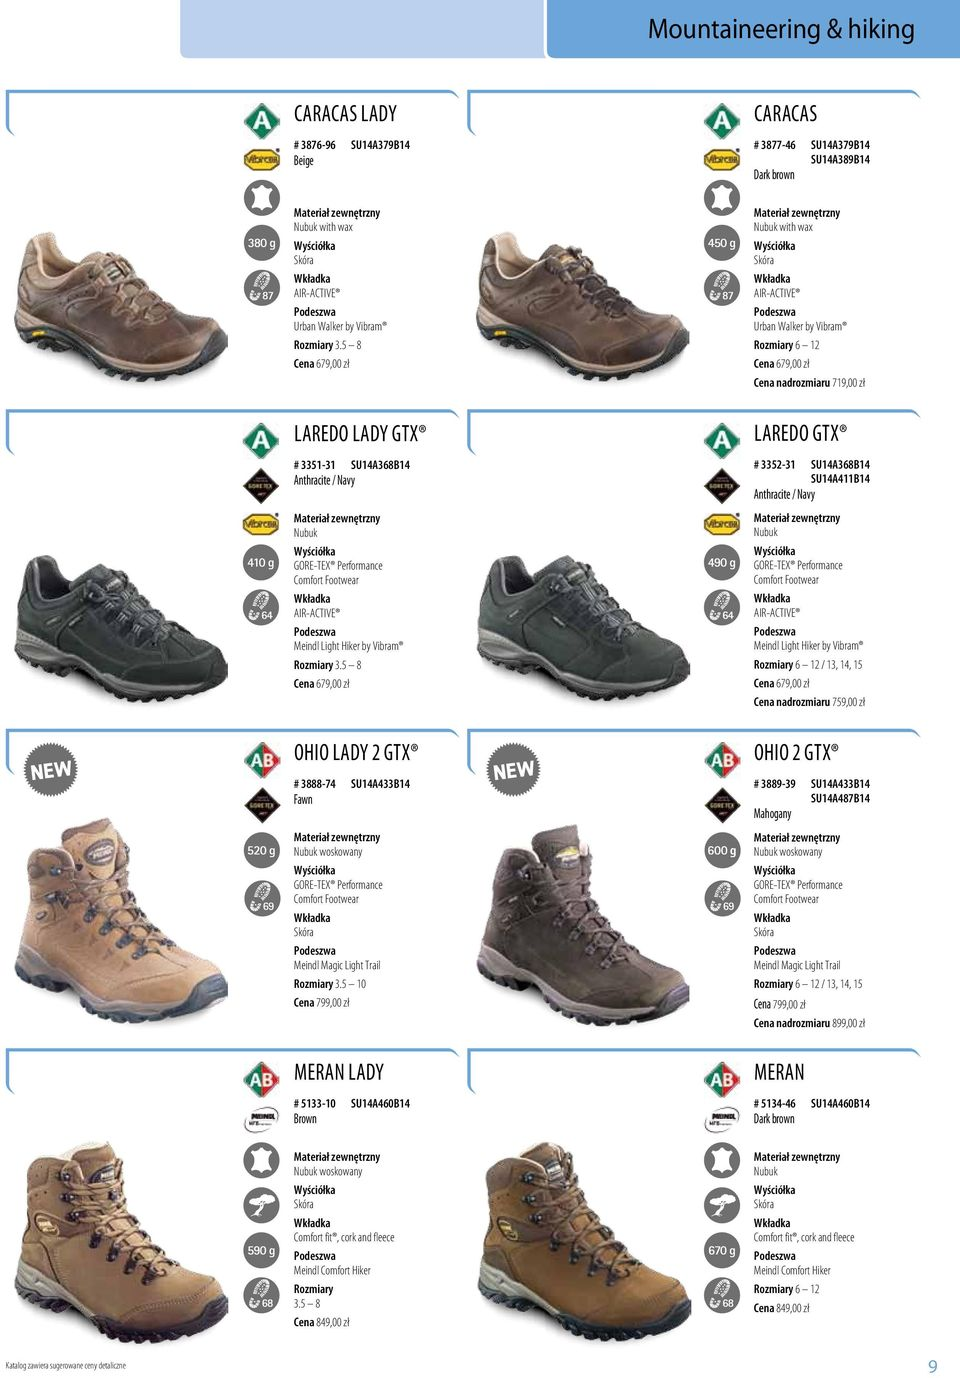 Light Hiker by Vibram / 13, 14, 15 Cena 679,00 zł Cena nadrozmiaru 759,00 zł Ohio Lady 2 GTX # 3888-74 SU14A433B14 Fawn woskowany Meindl Magic Light Trail 3.